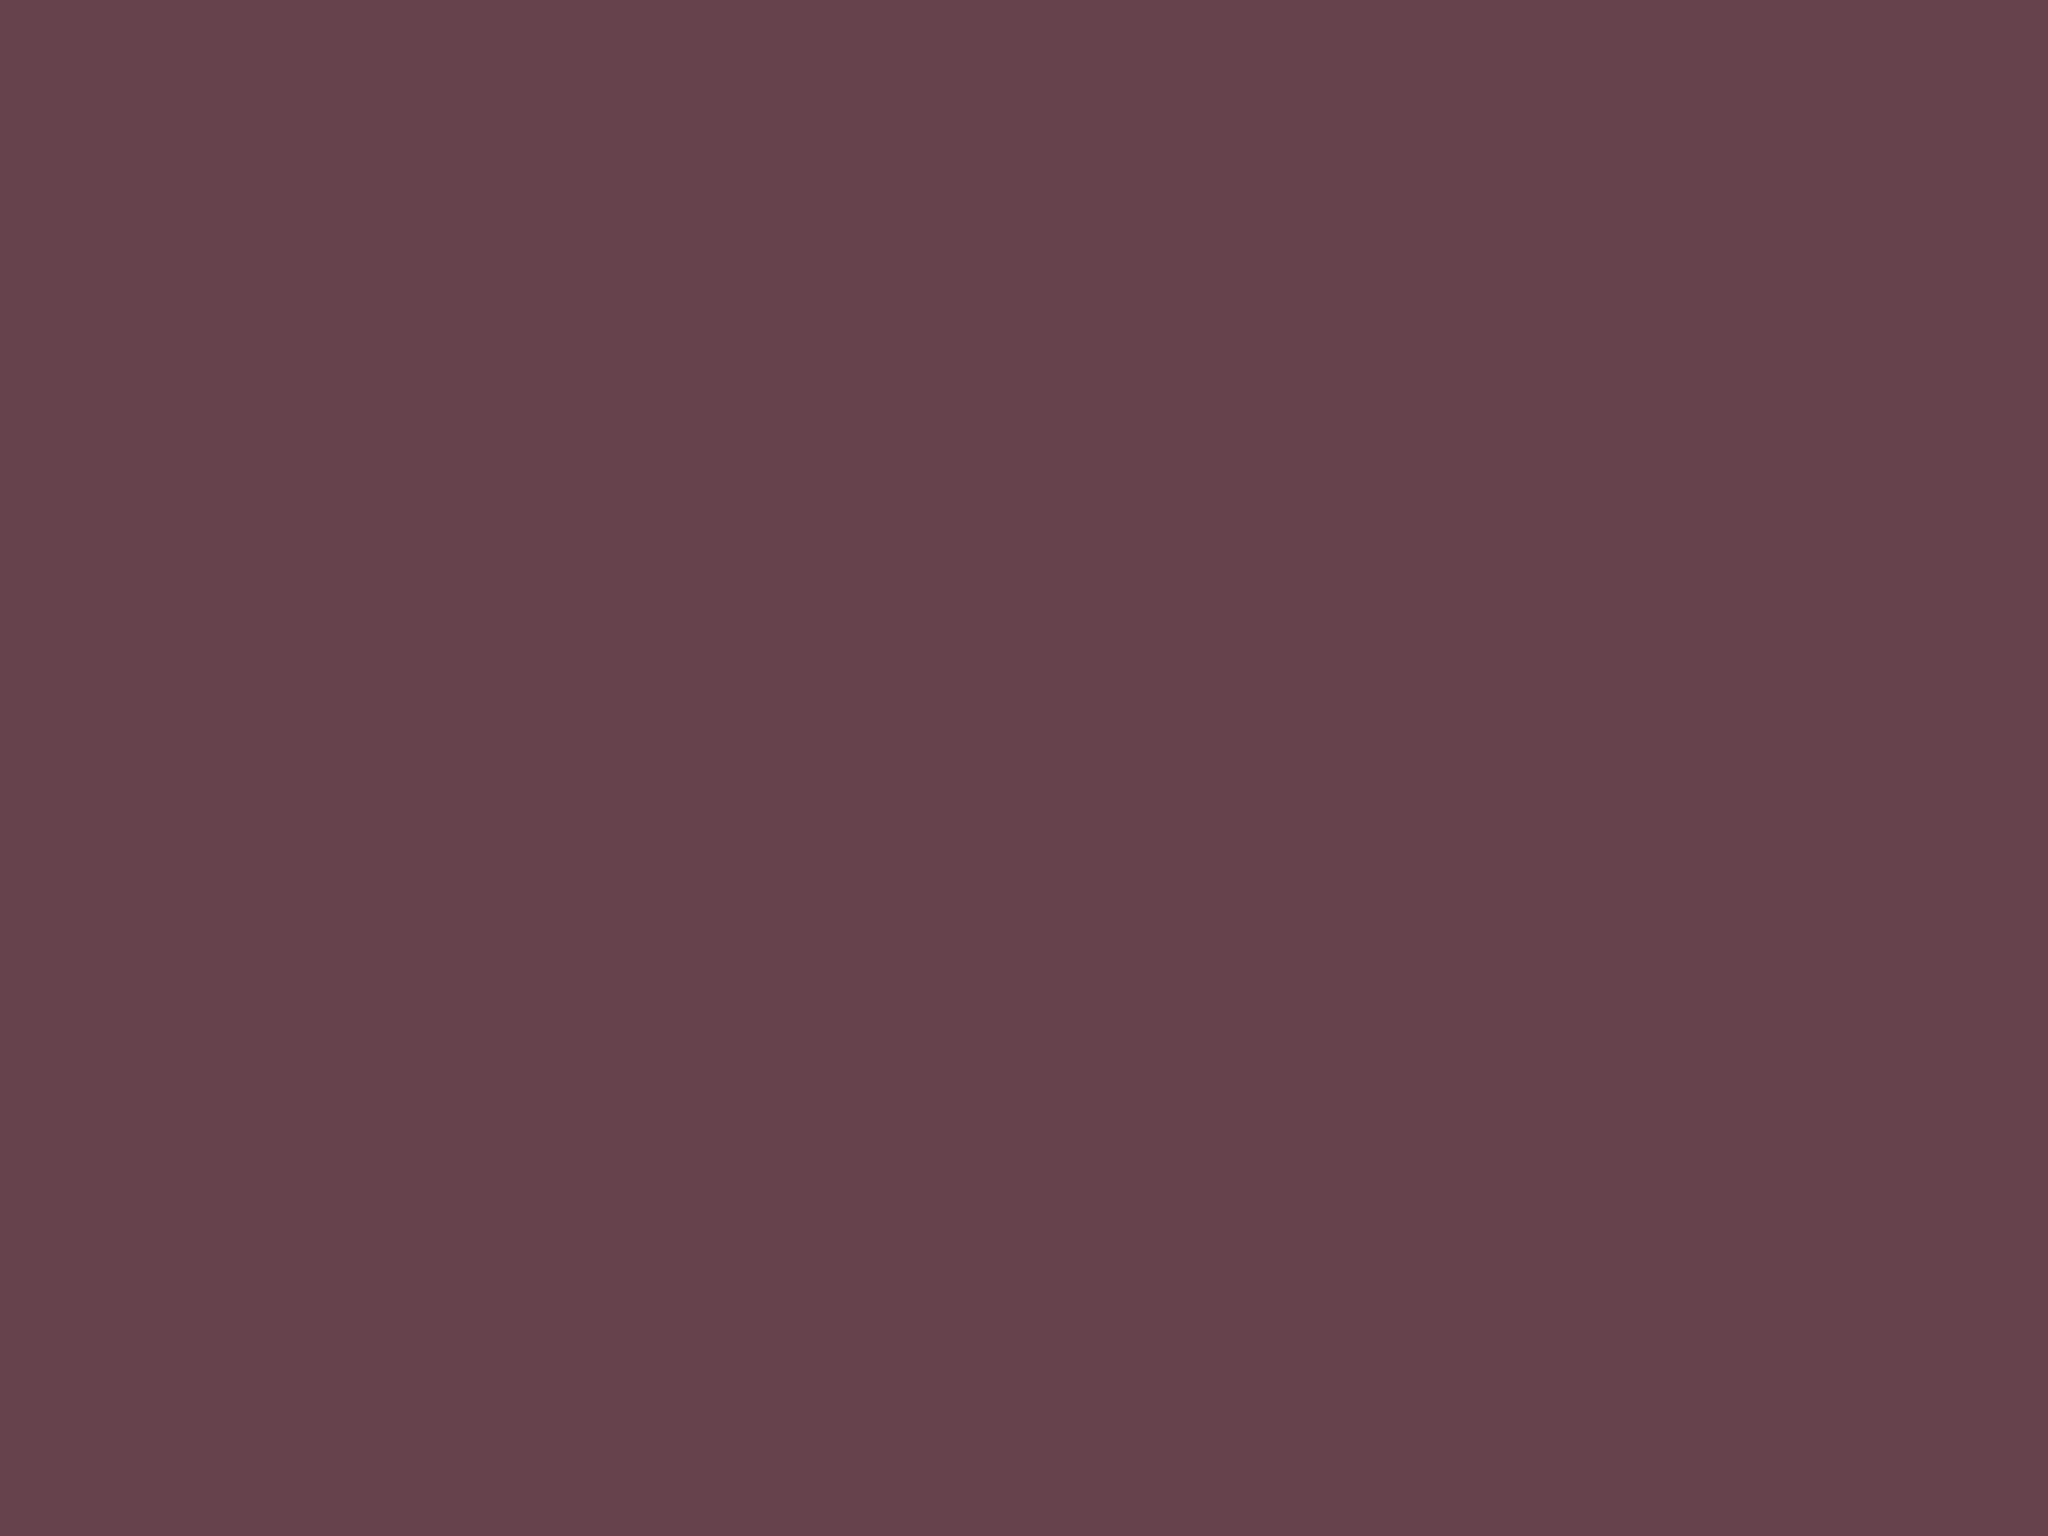 2048x1536 Deep Tuscan Red Solid Color Background